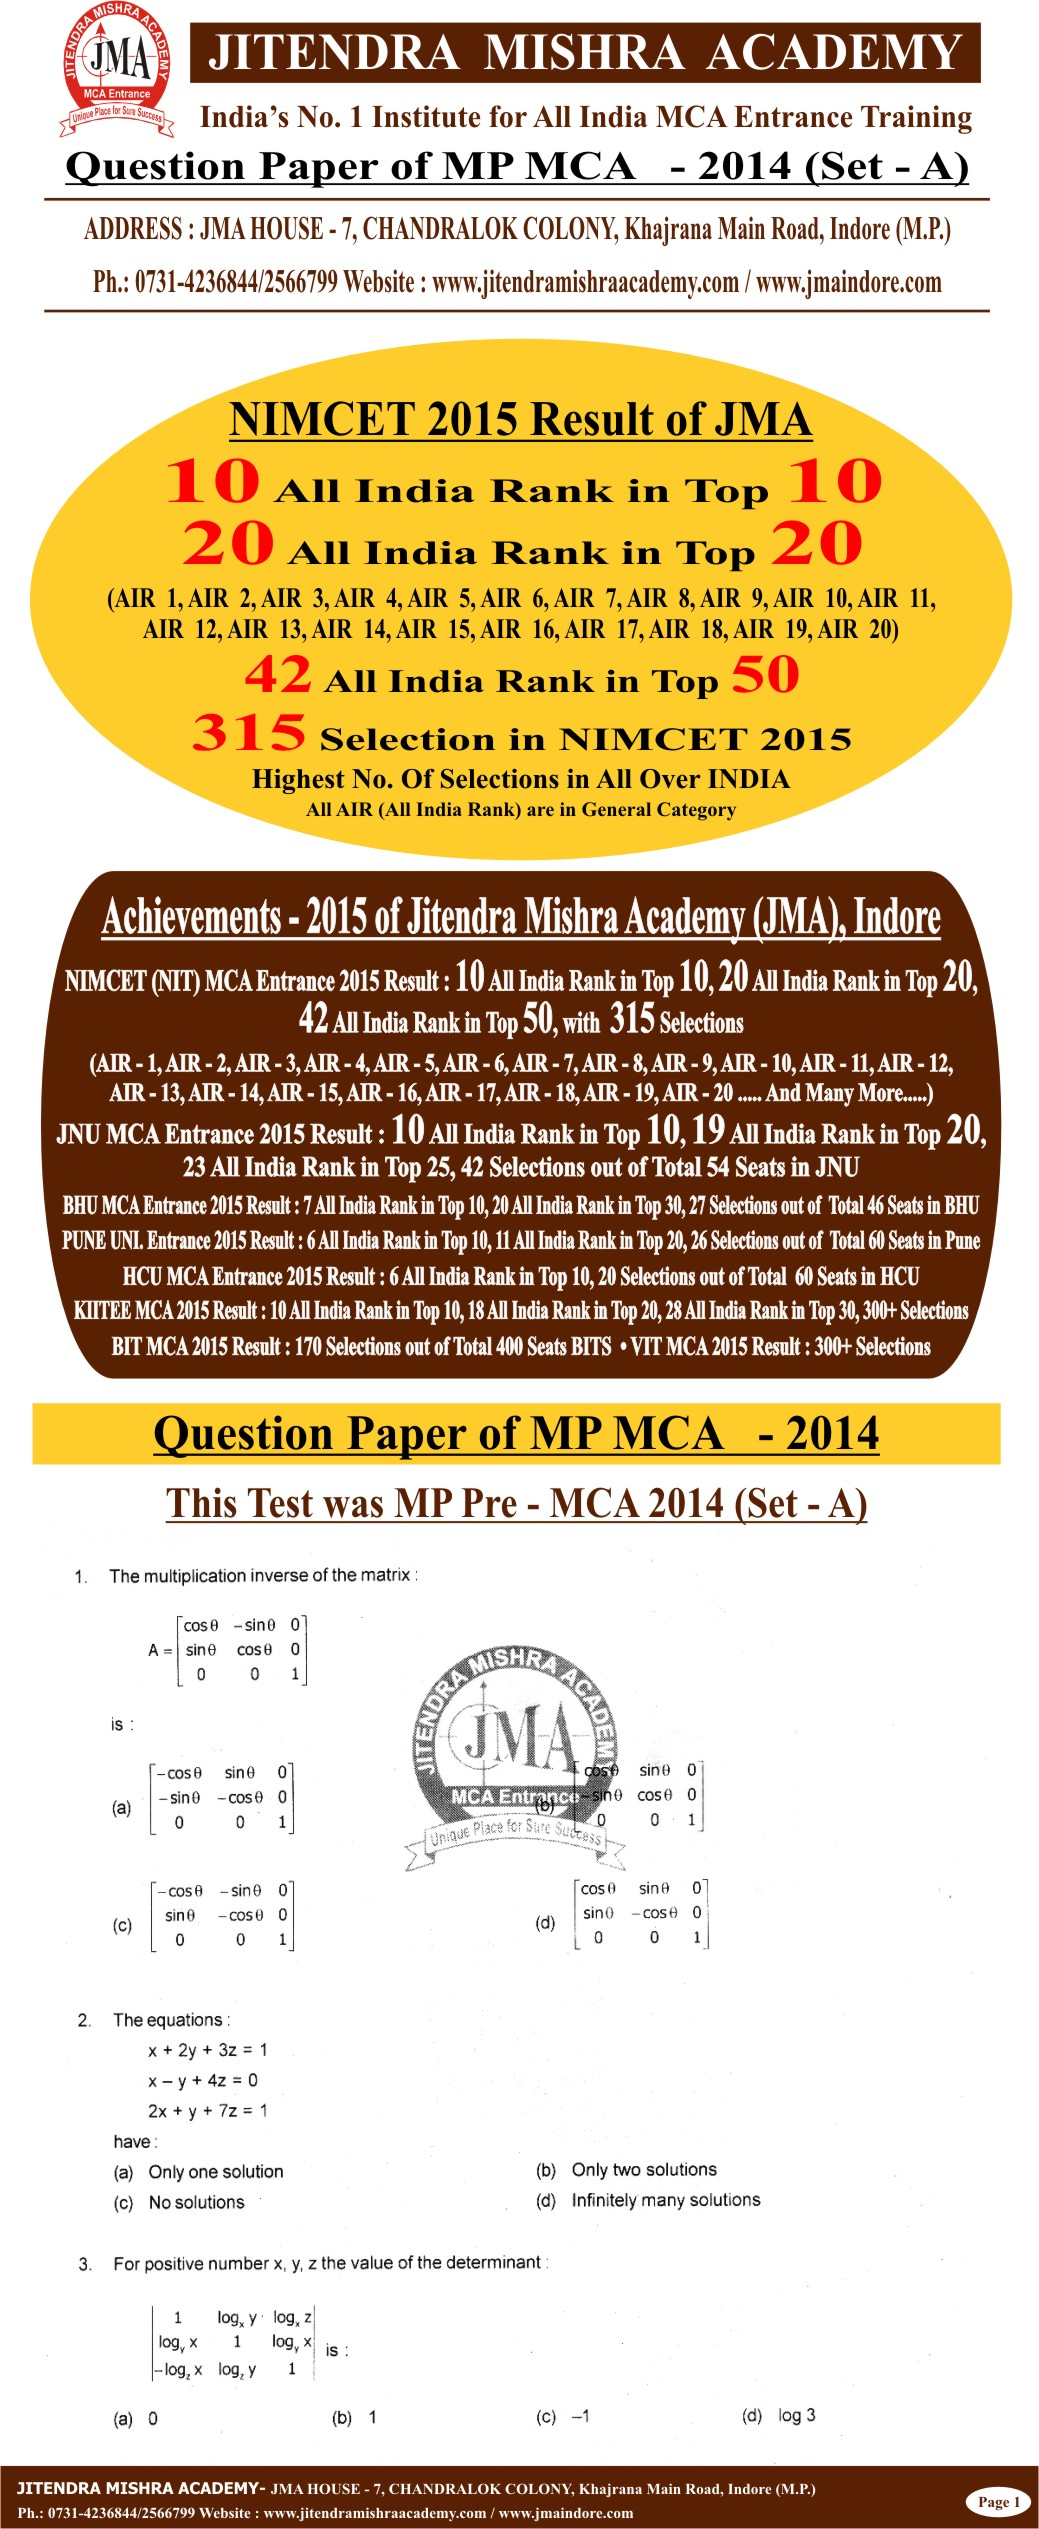 MP MCA  - 2014 (FIRST PAGE)